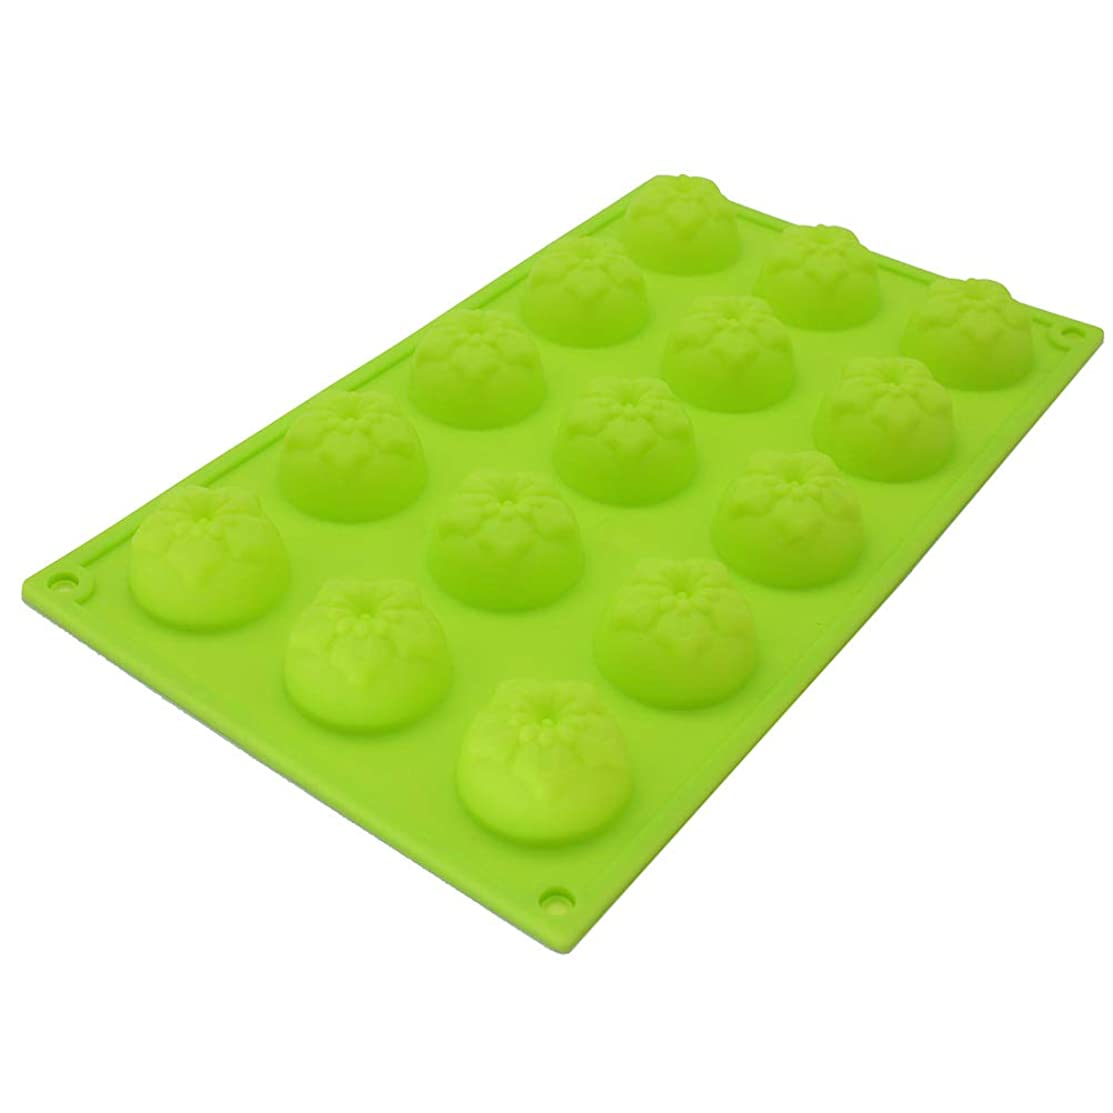 X-Haibei Narcissus Flower Chocolate Jello Silicone Mold Baby Guest Soap Lotion Bar Making